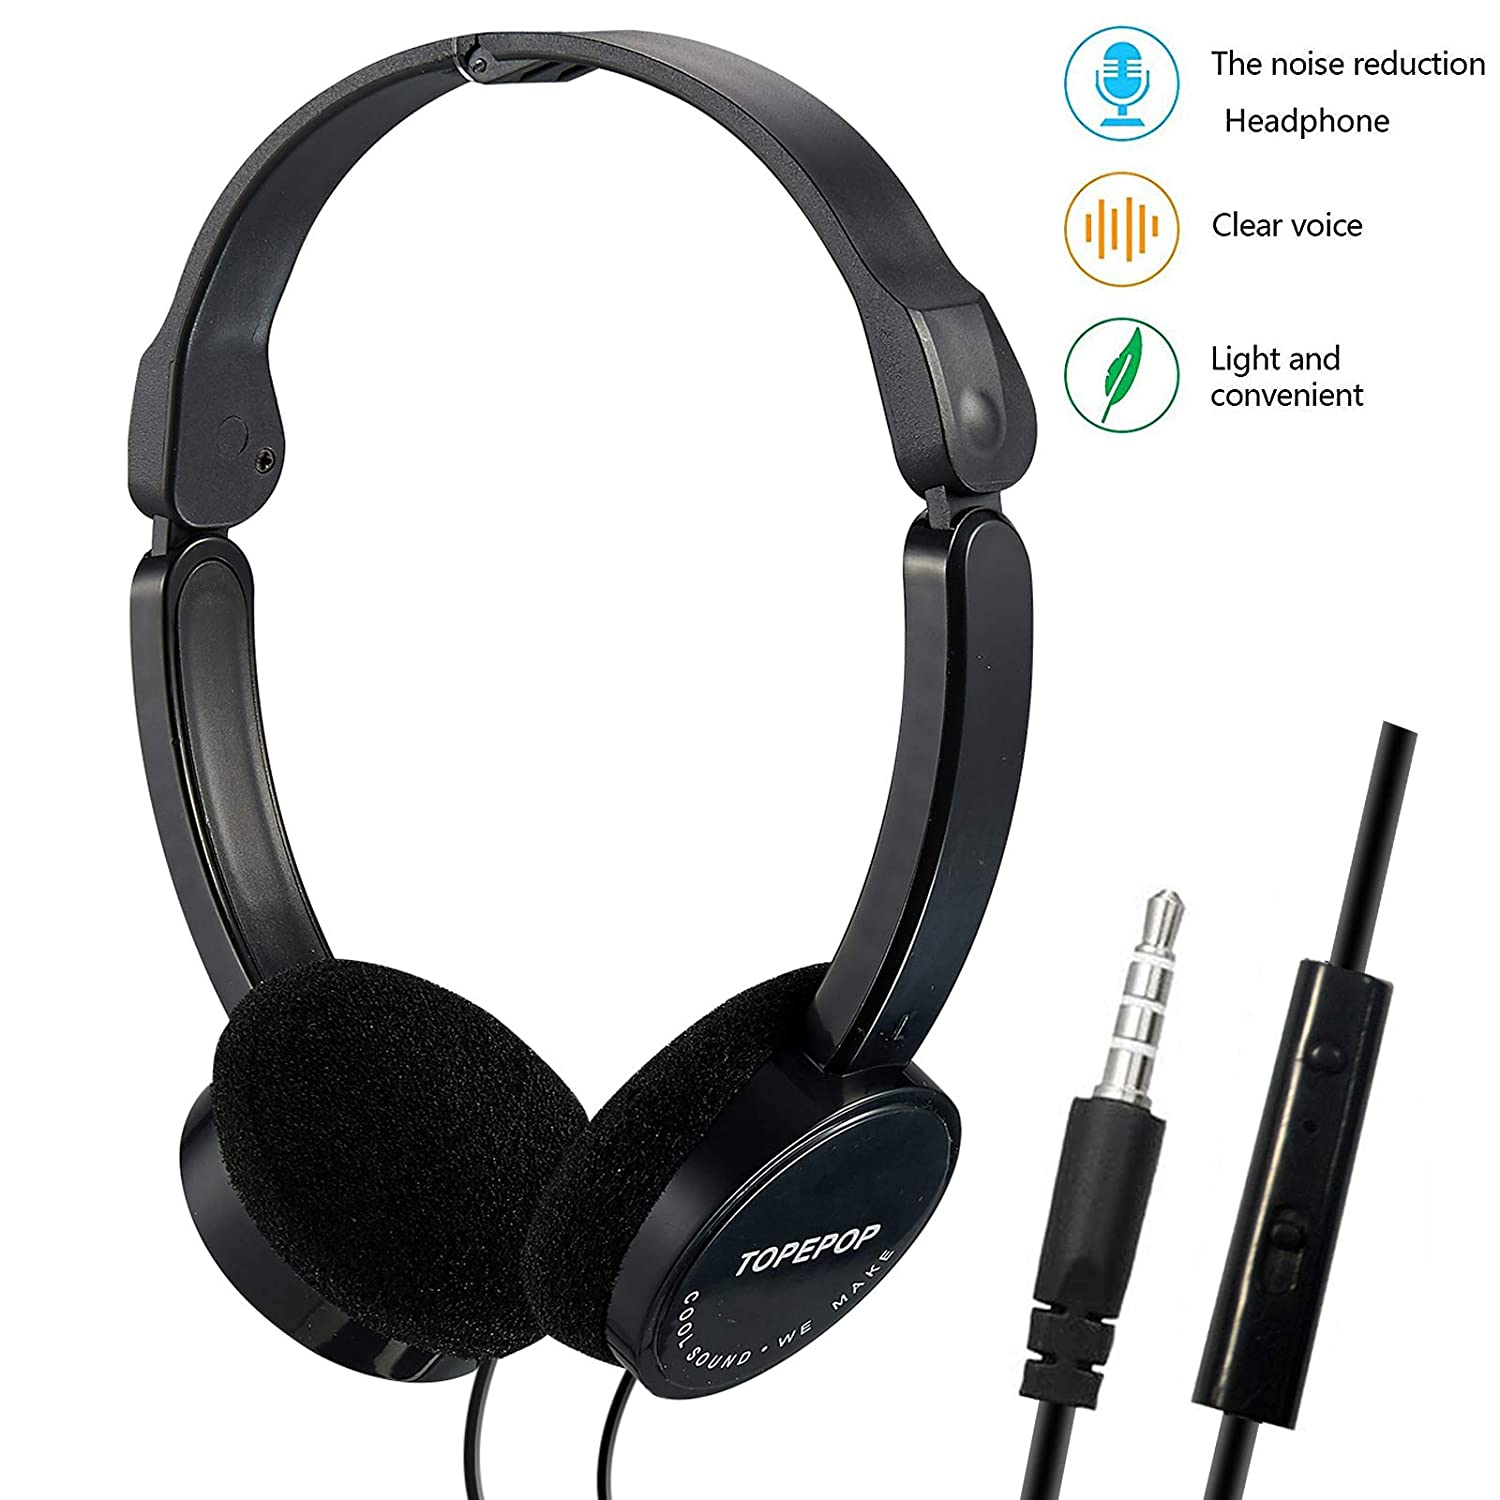 Wired Headphones Over Ear Earphones Foldable Lightweight Headsets Stereo Noise Cancelling Earpiece with Mic 3.5mm Jack Headband Headphones for Kids Boys Girls Men Women Cell Phones Computer PC iPad